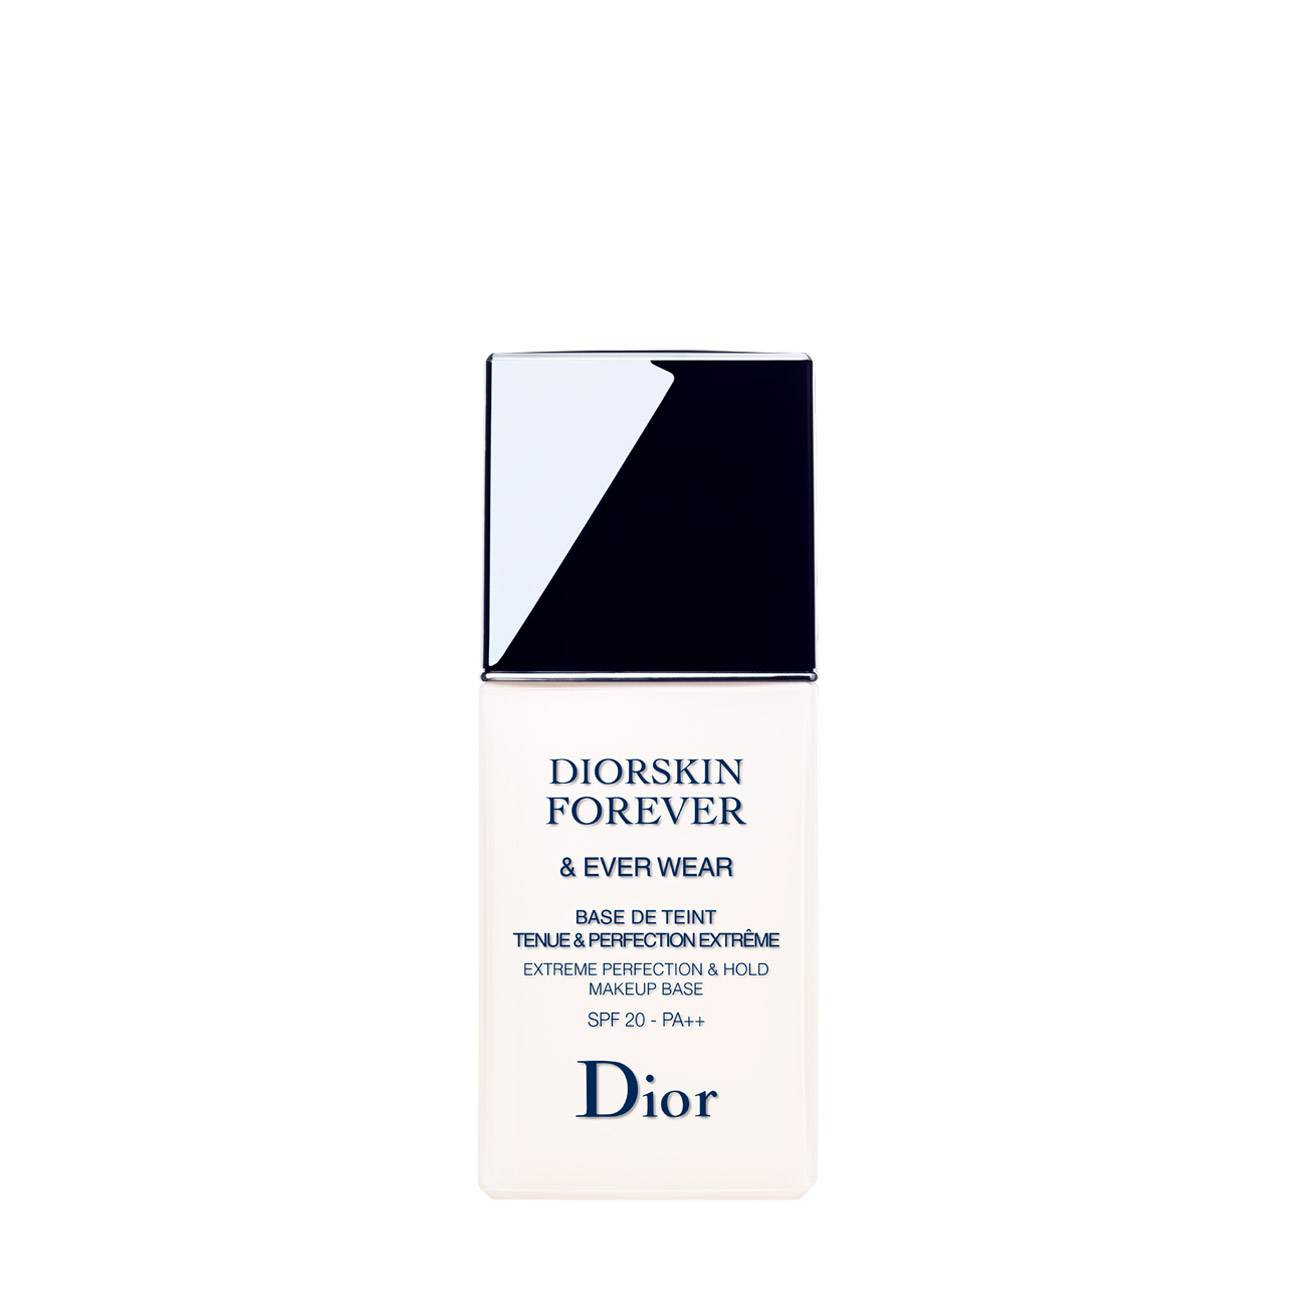 Diorskin Forever Makeup Base 30 Grame Dior imagine 2021 bestvalue.eu